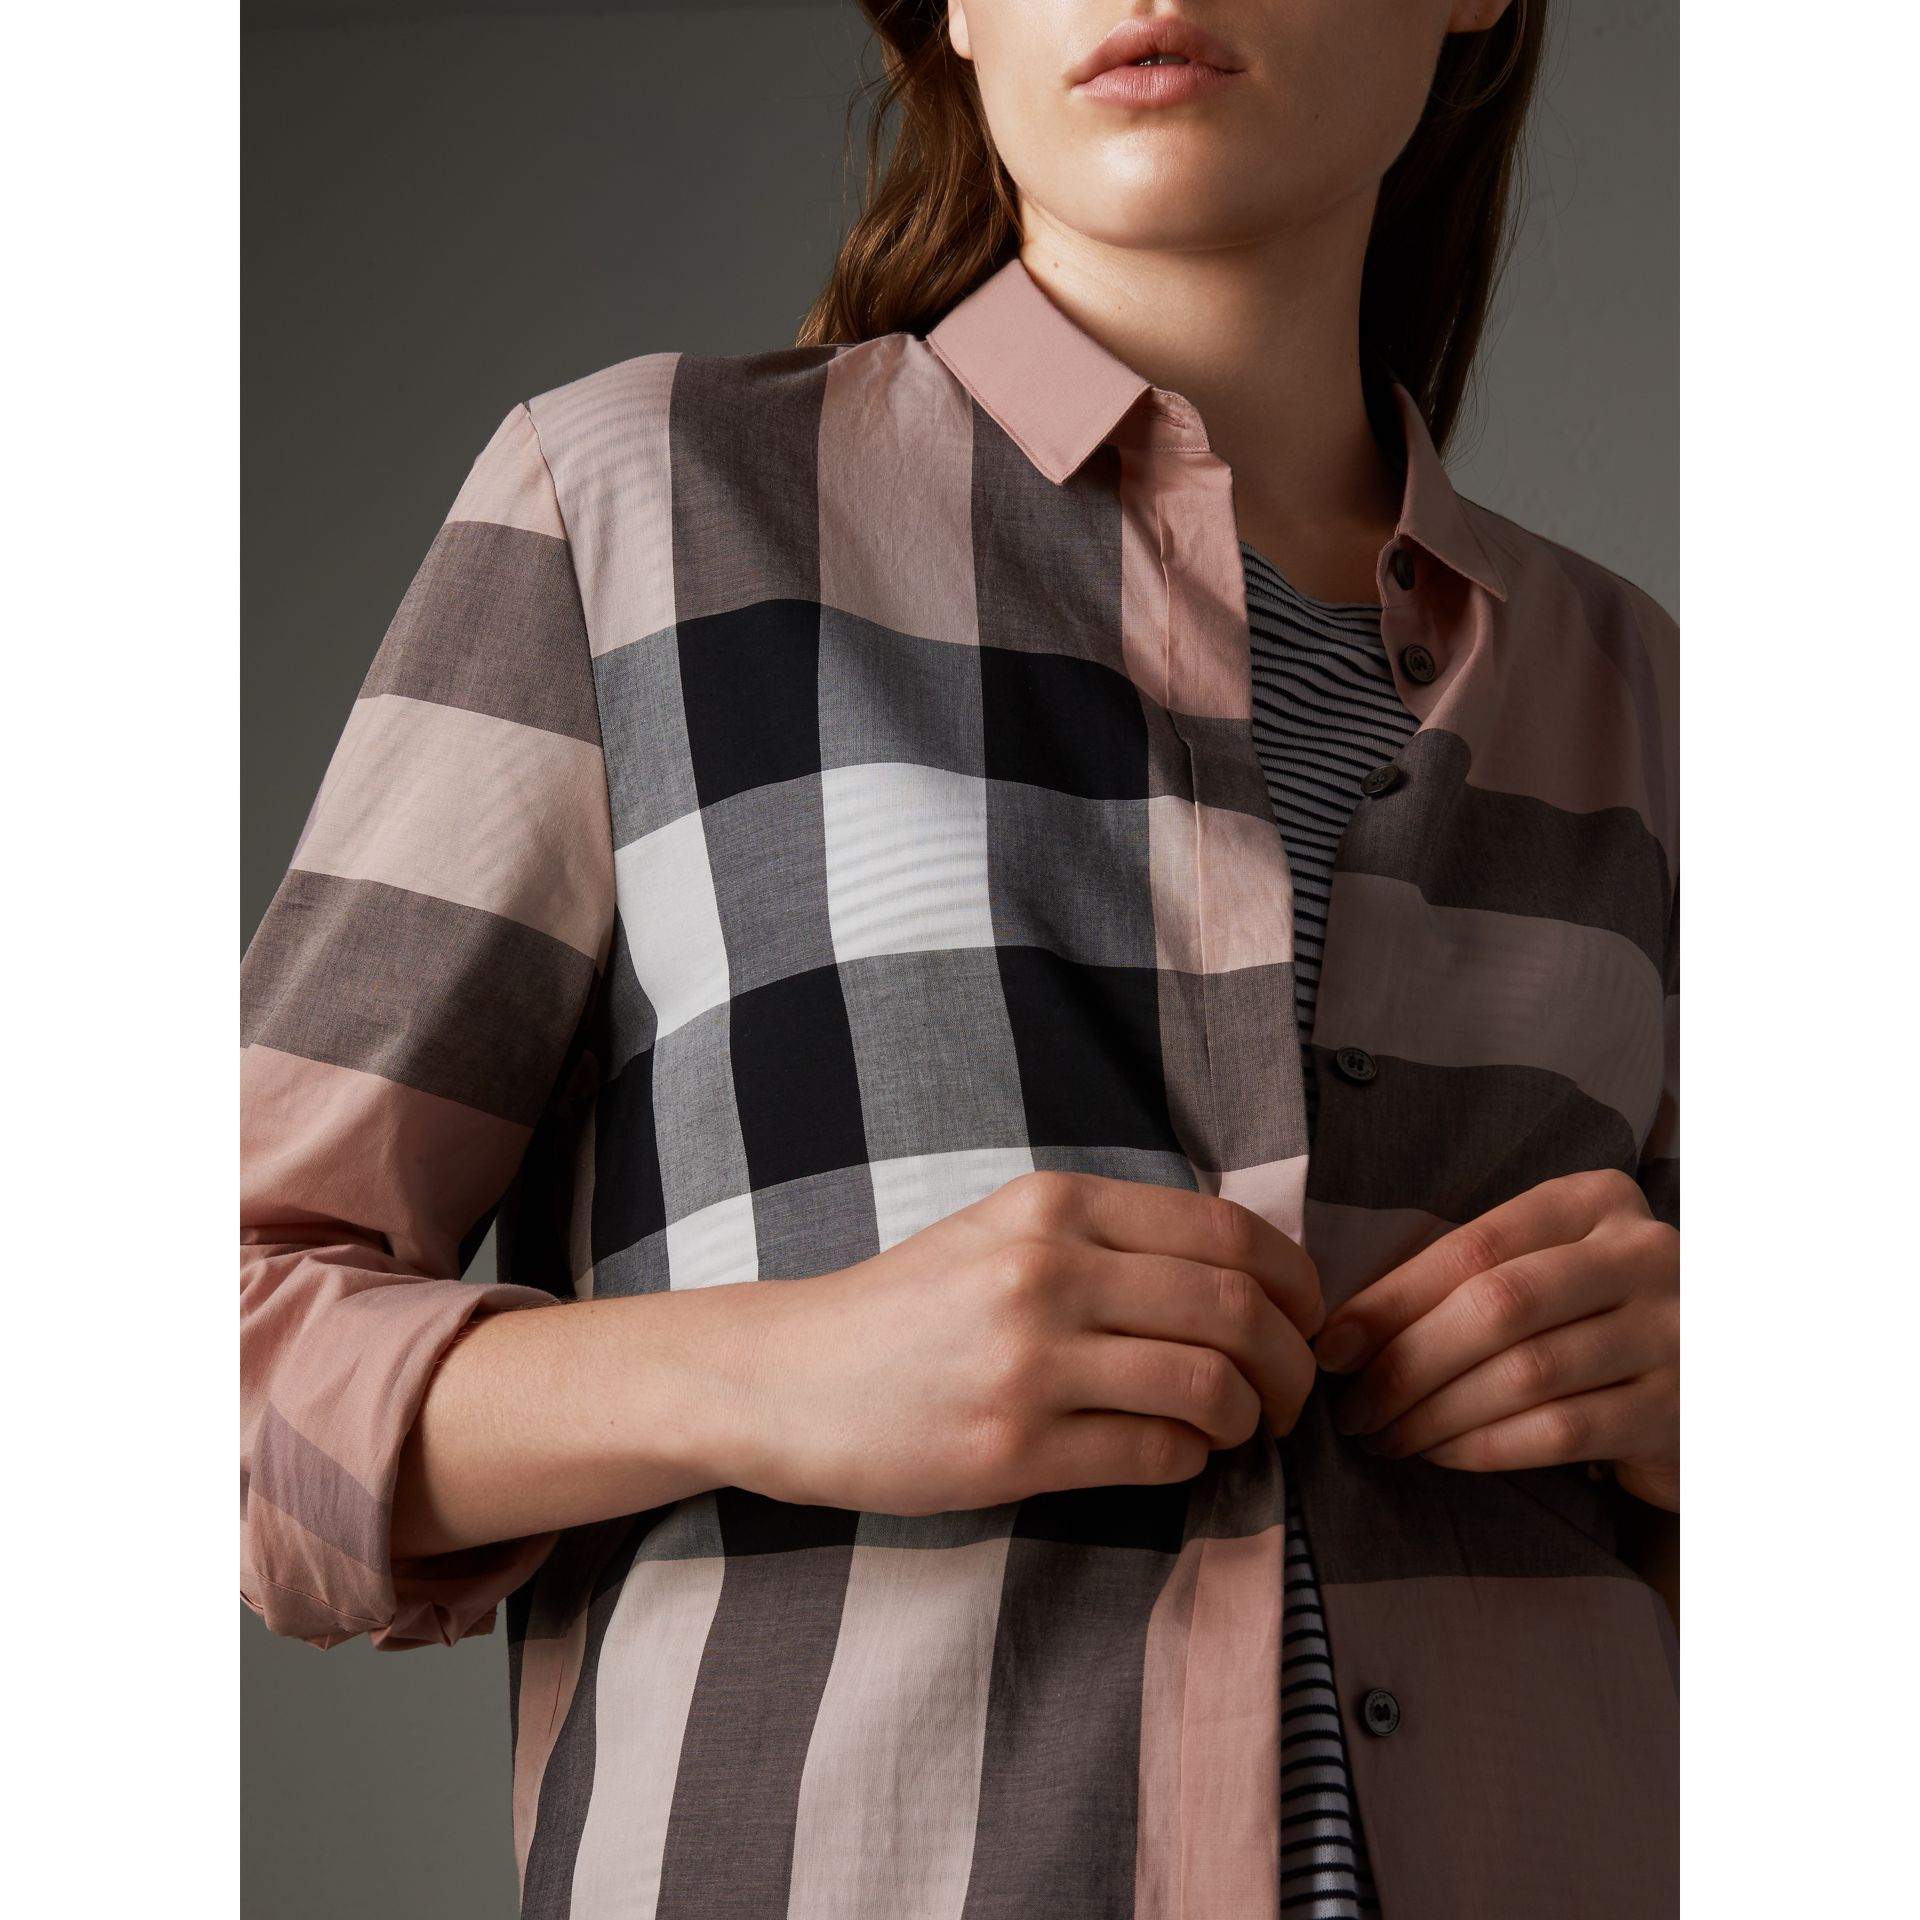 Chemise en coton à motif check (Rose Antique) - Femme | Burberry - photo de la galerie 2